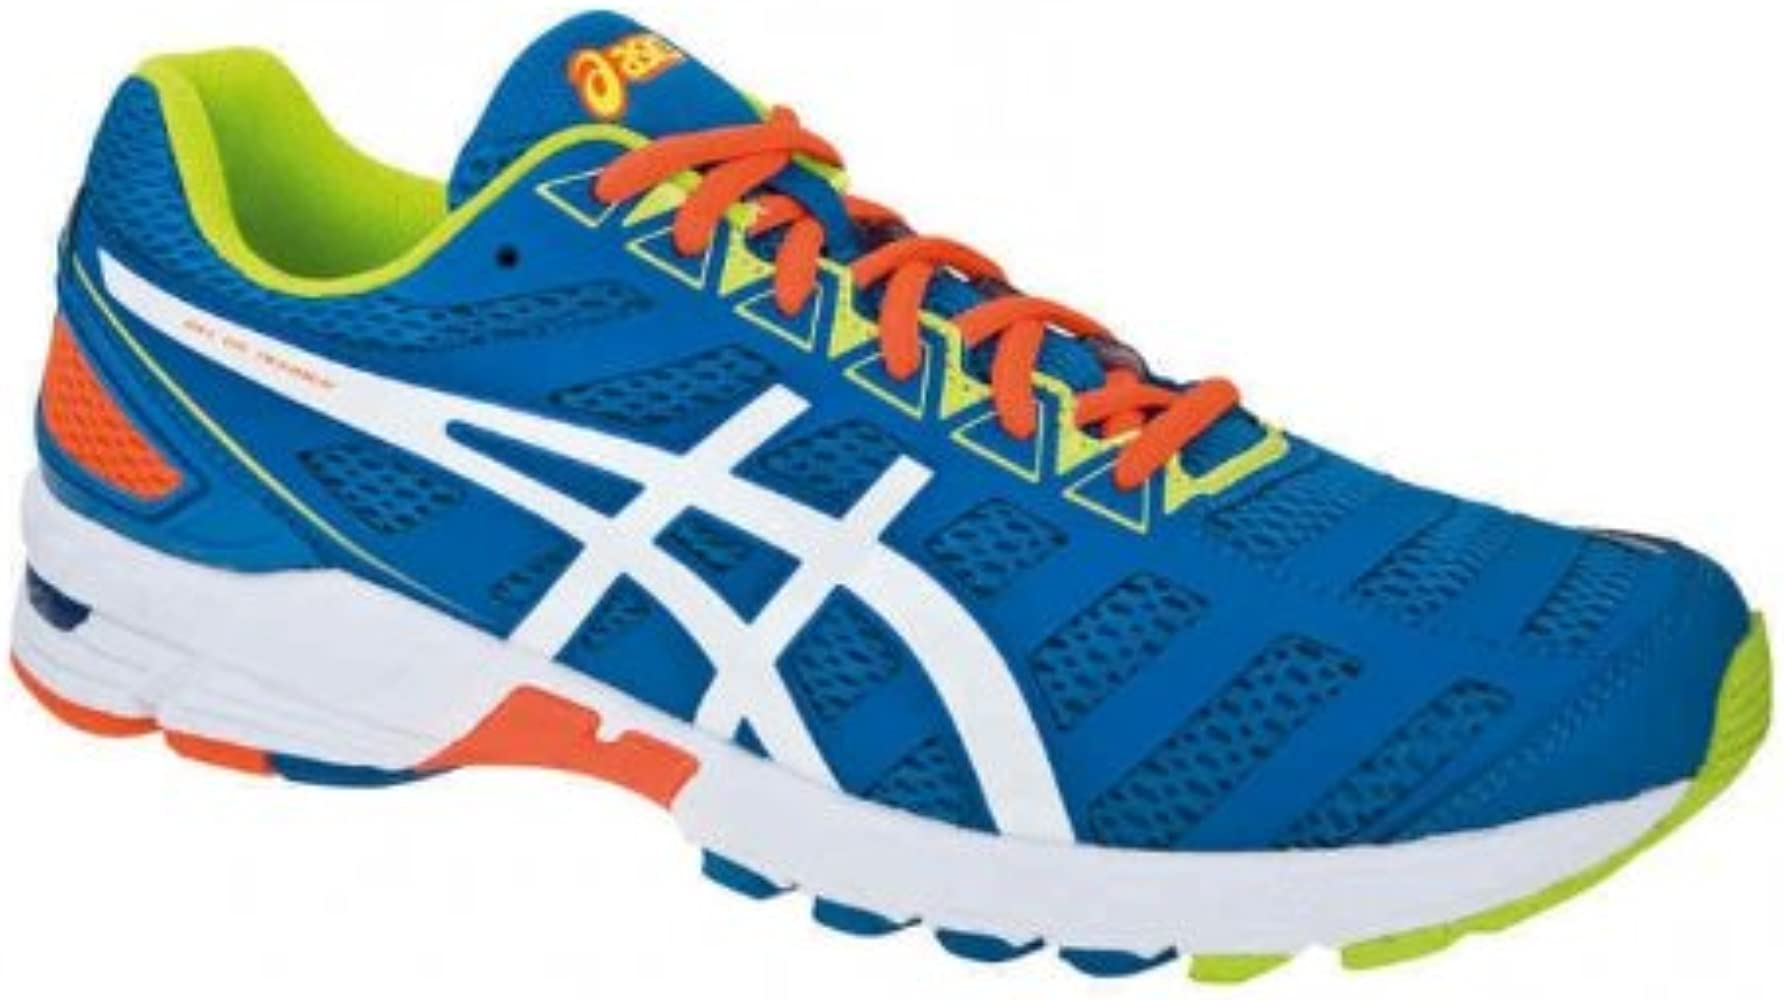 Buy > 1 asics gel-ds trainer 18 Limit discounts 50% OFF